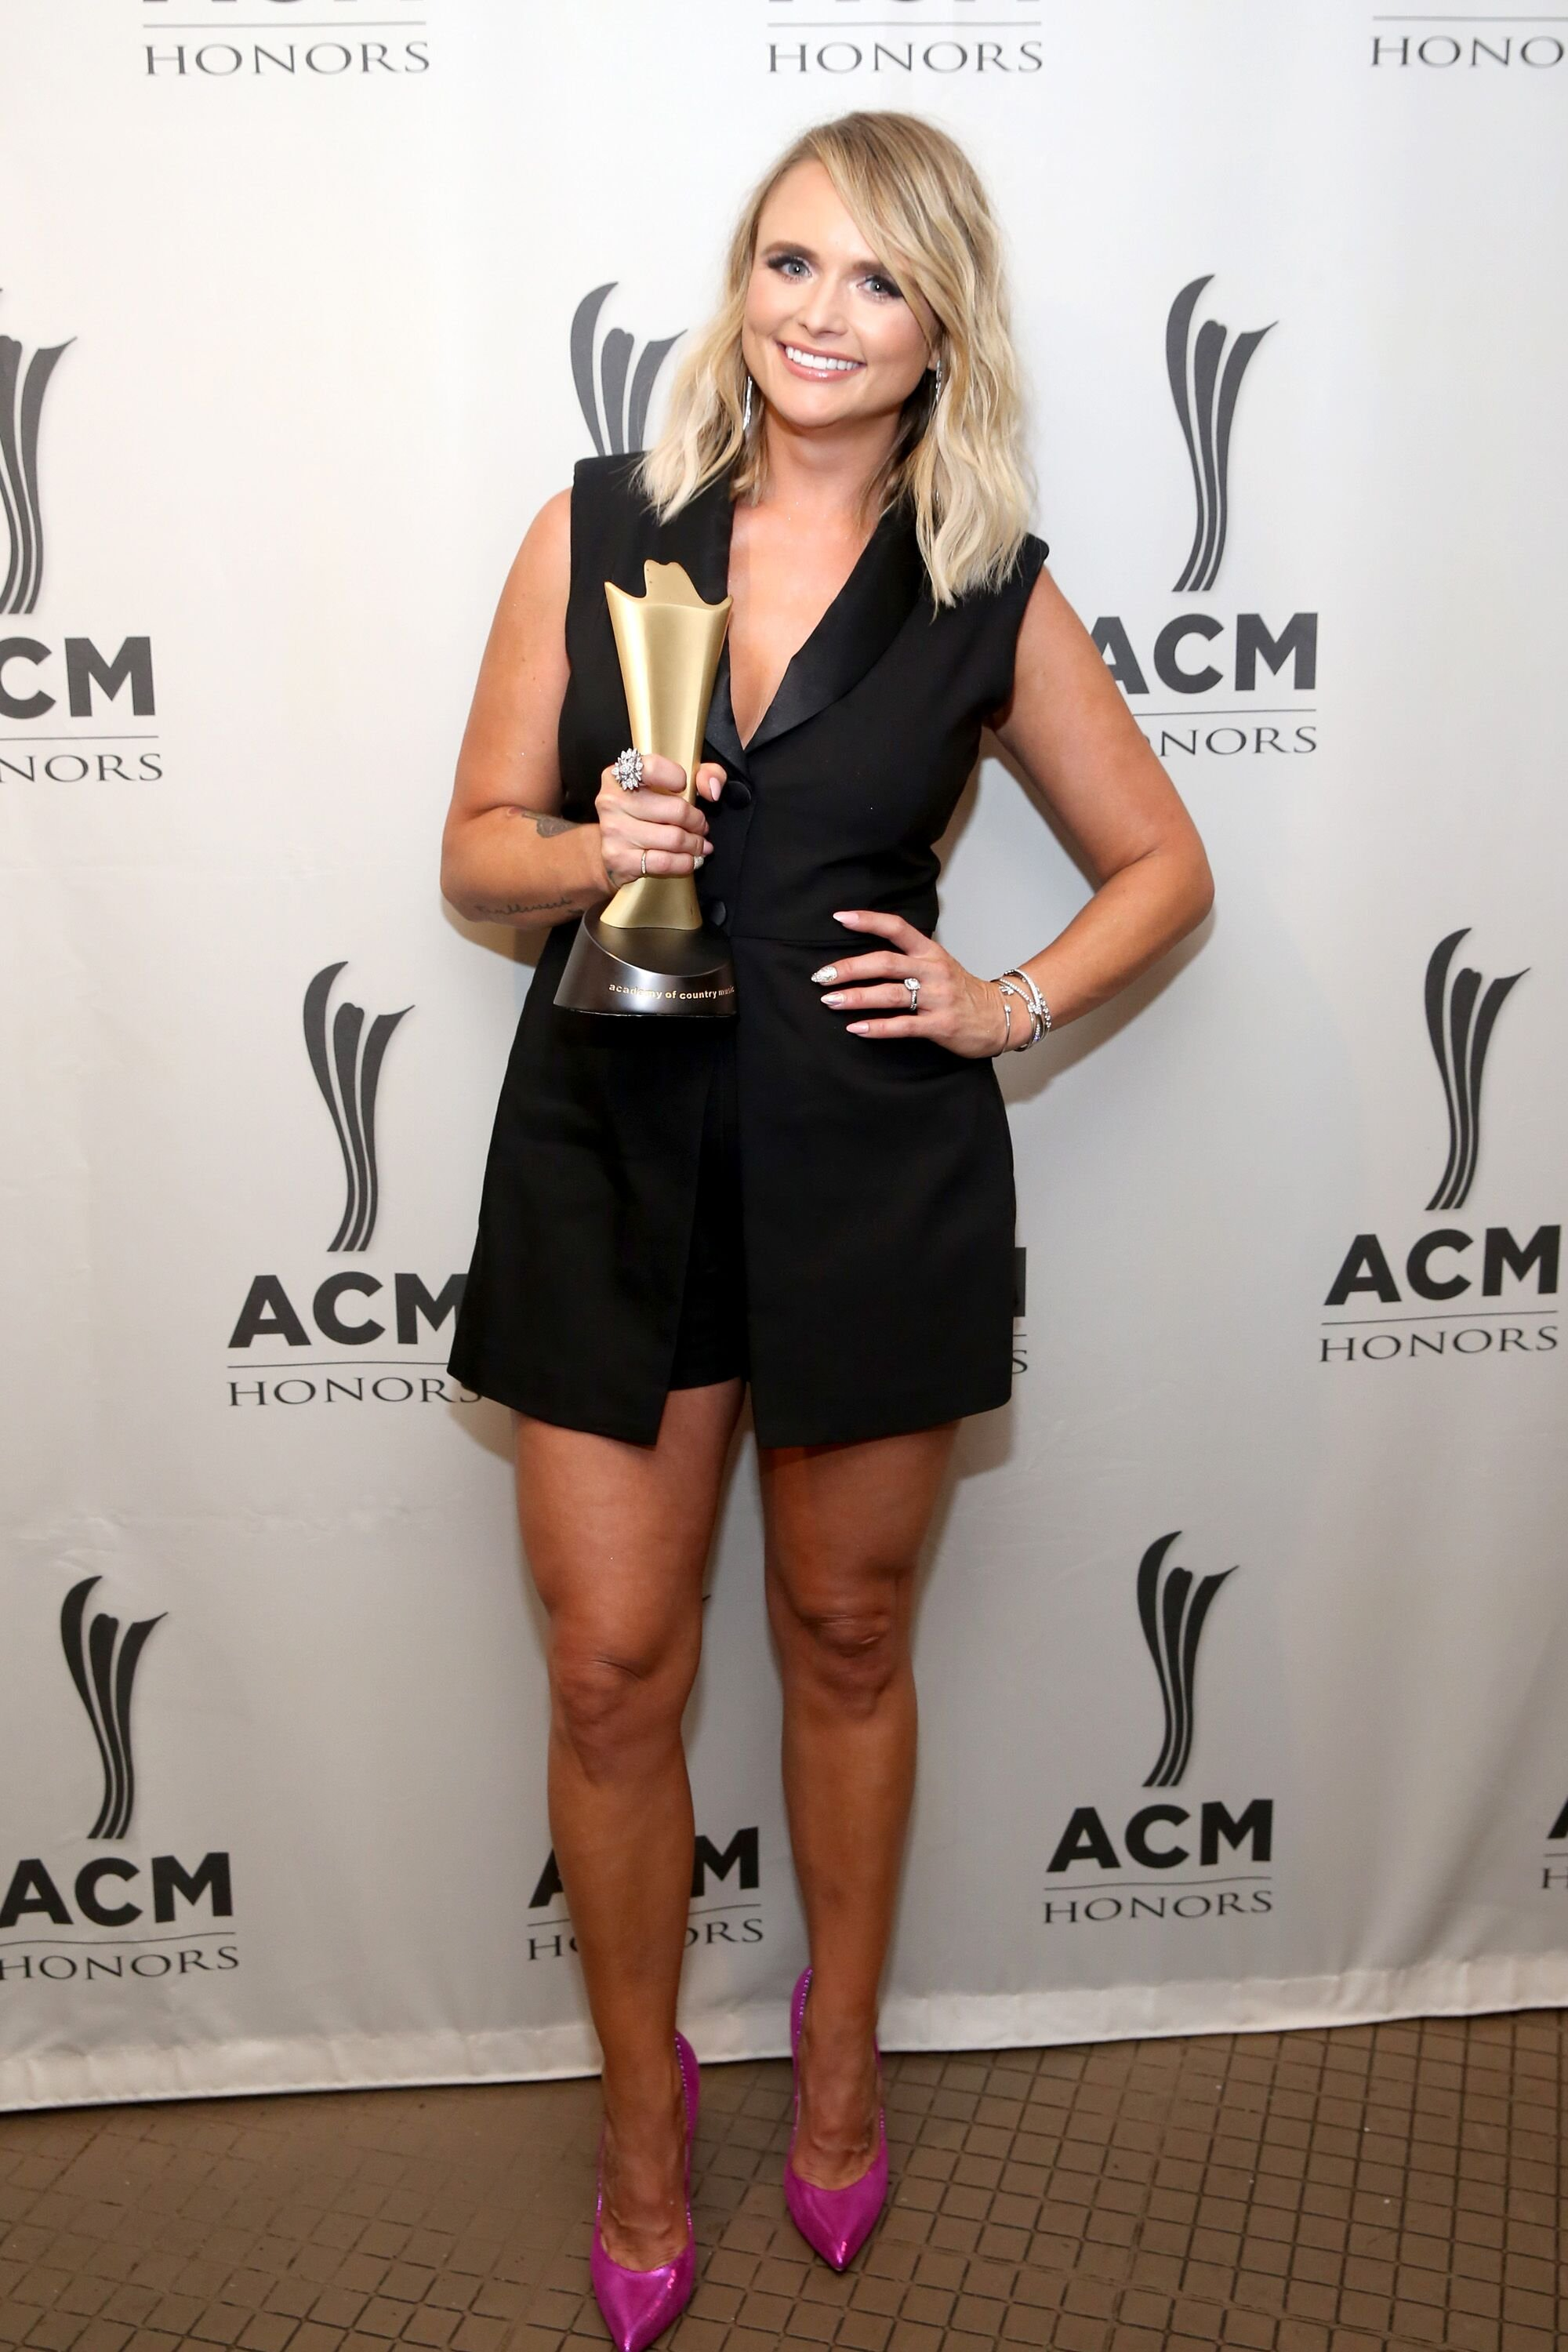 Miranda Lambert at the 13th Annual ACM Honors on August 21, 2019, in Nashville, Tennessee | Photo: Terry Wyatt/Getty Images